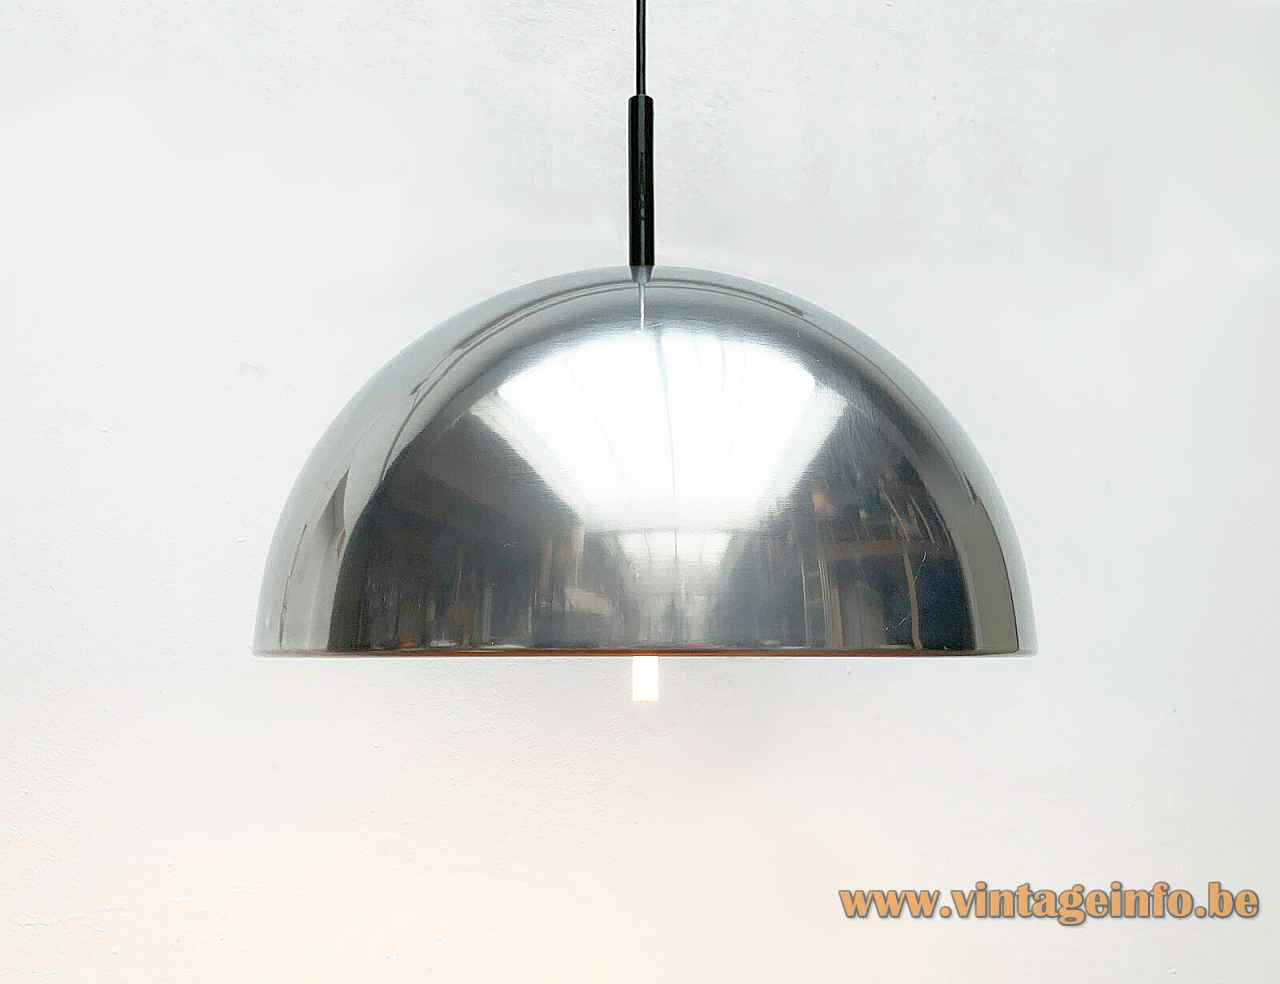 Staff pendant lamp 5071 chrome half round mushroom lampshade acrylic diffuser disc 1970s Germany Model 5071/73/74